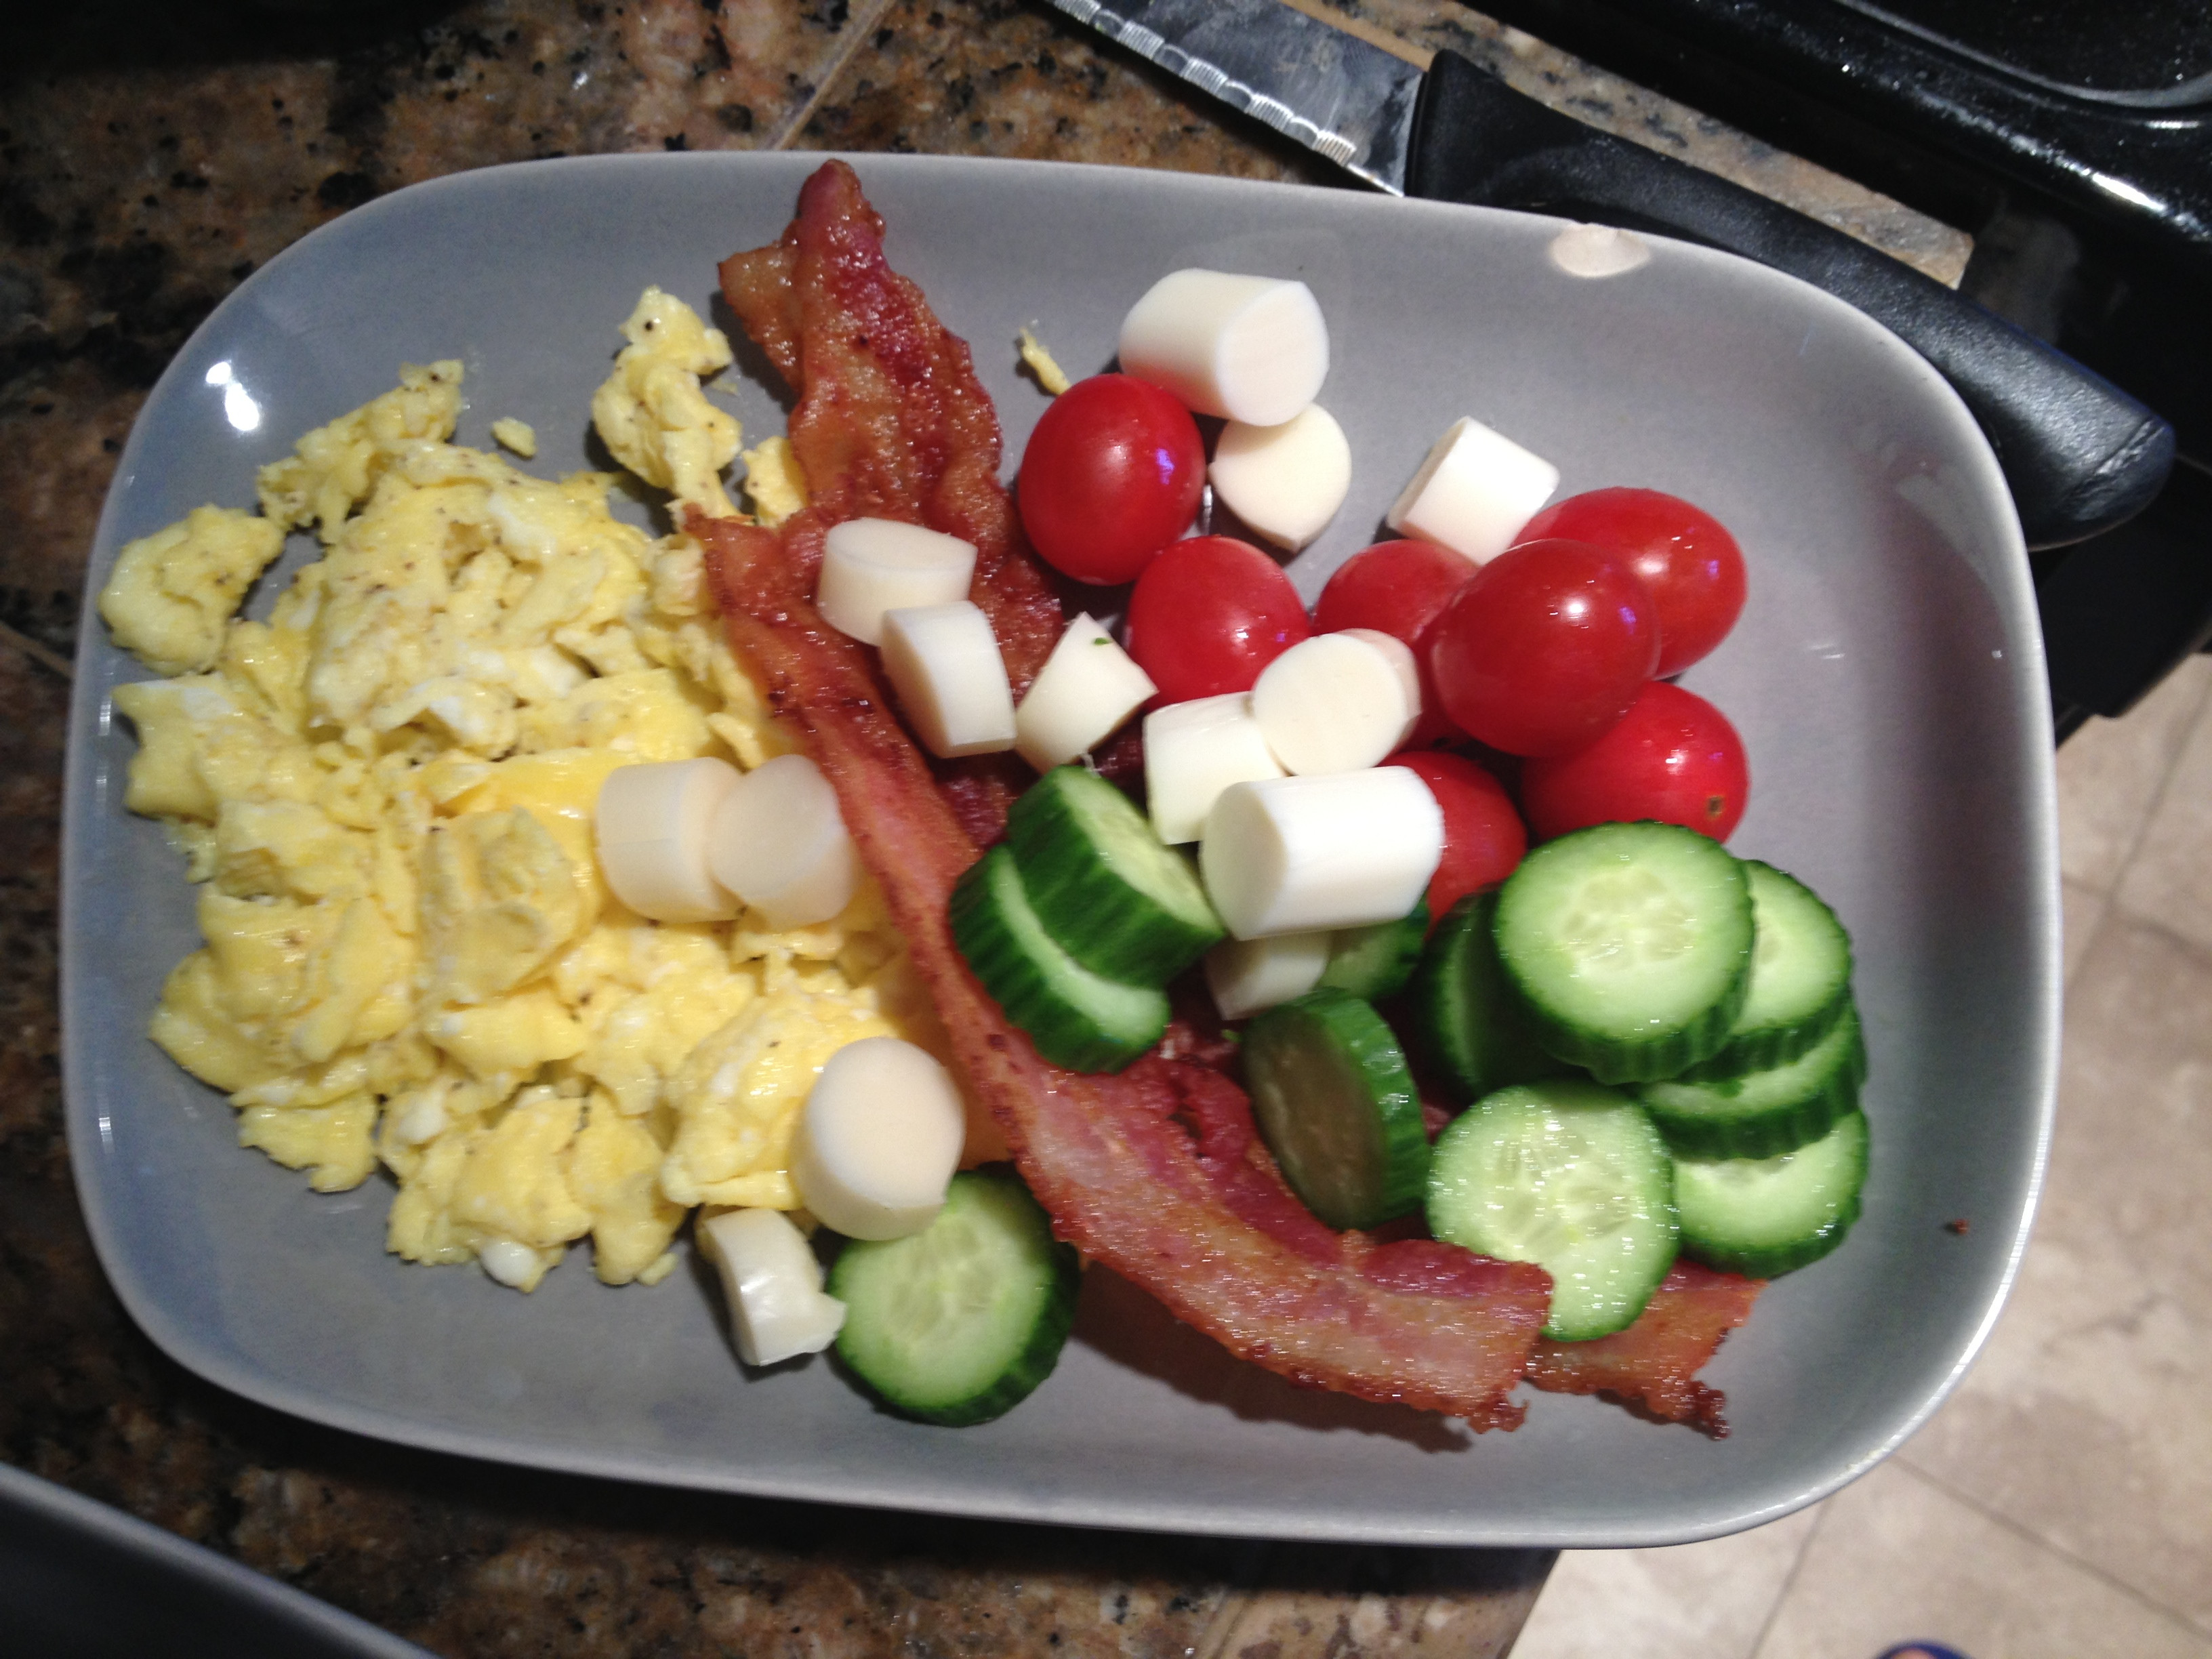 Healthy Protein Breakfast  Grab and Go High Protein Breakfasts Fitness & Health Matters